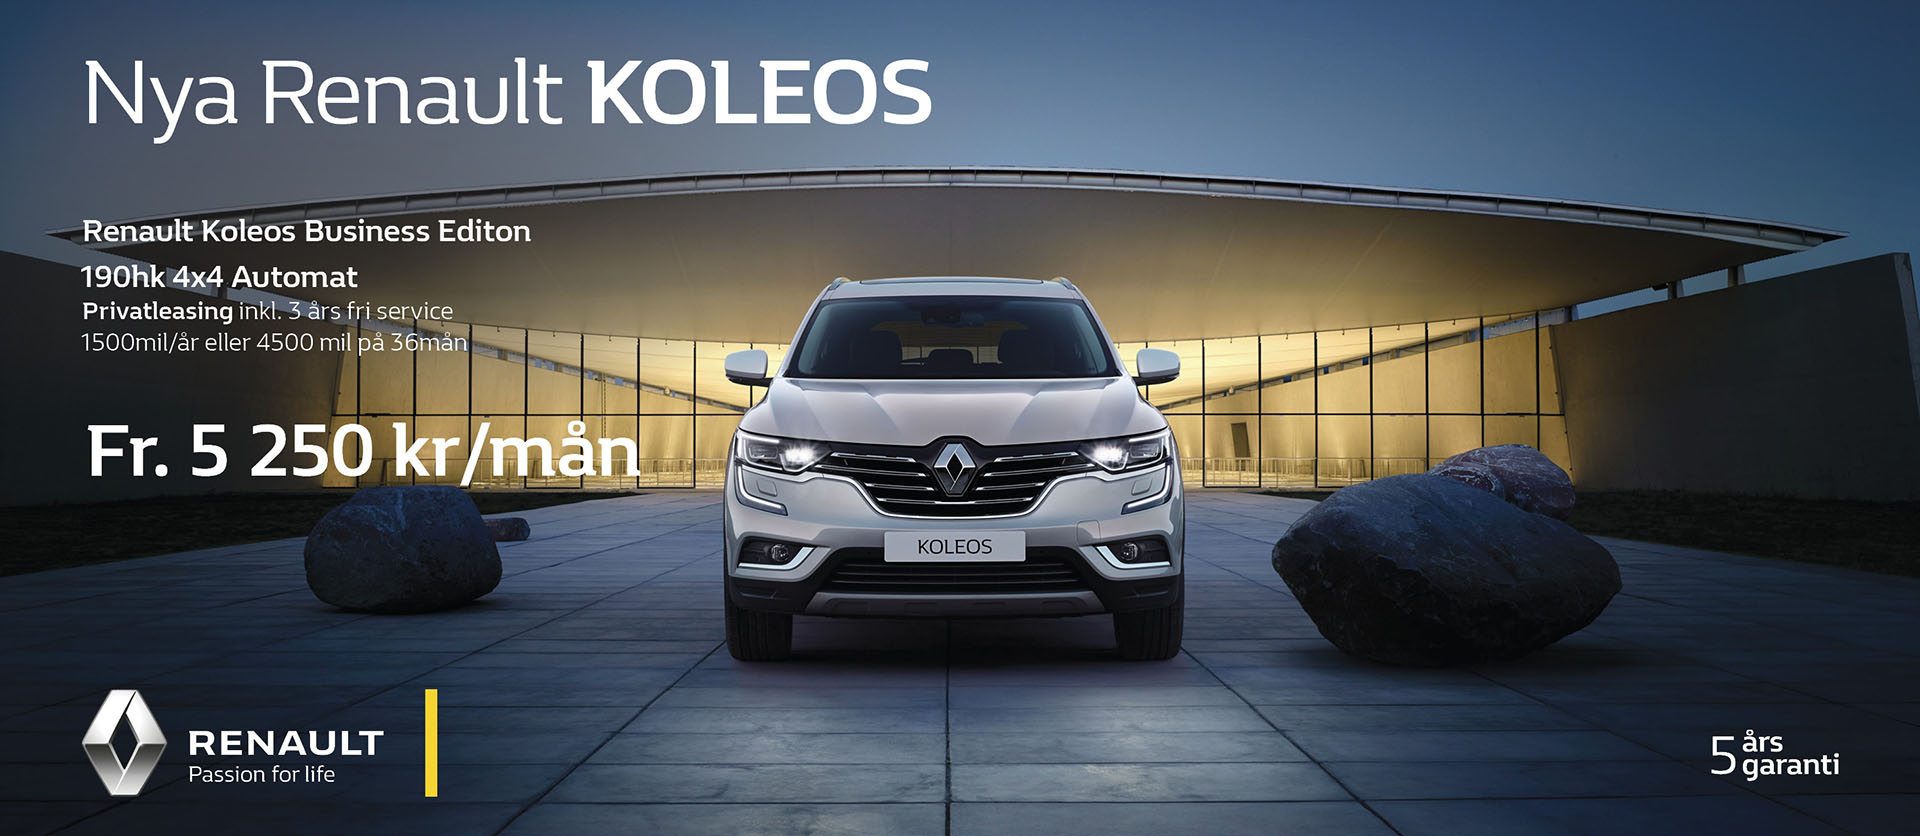 Renault Koleos Business Edition